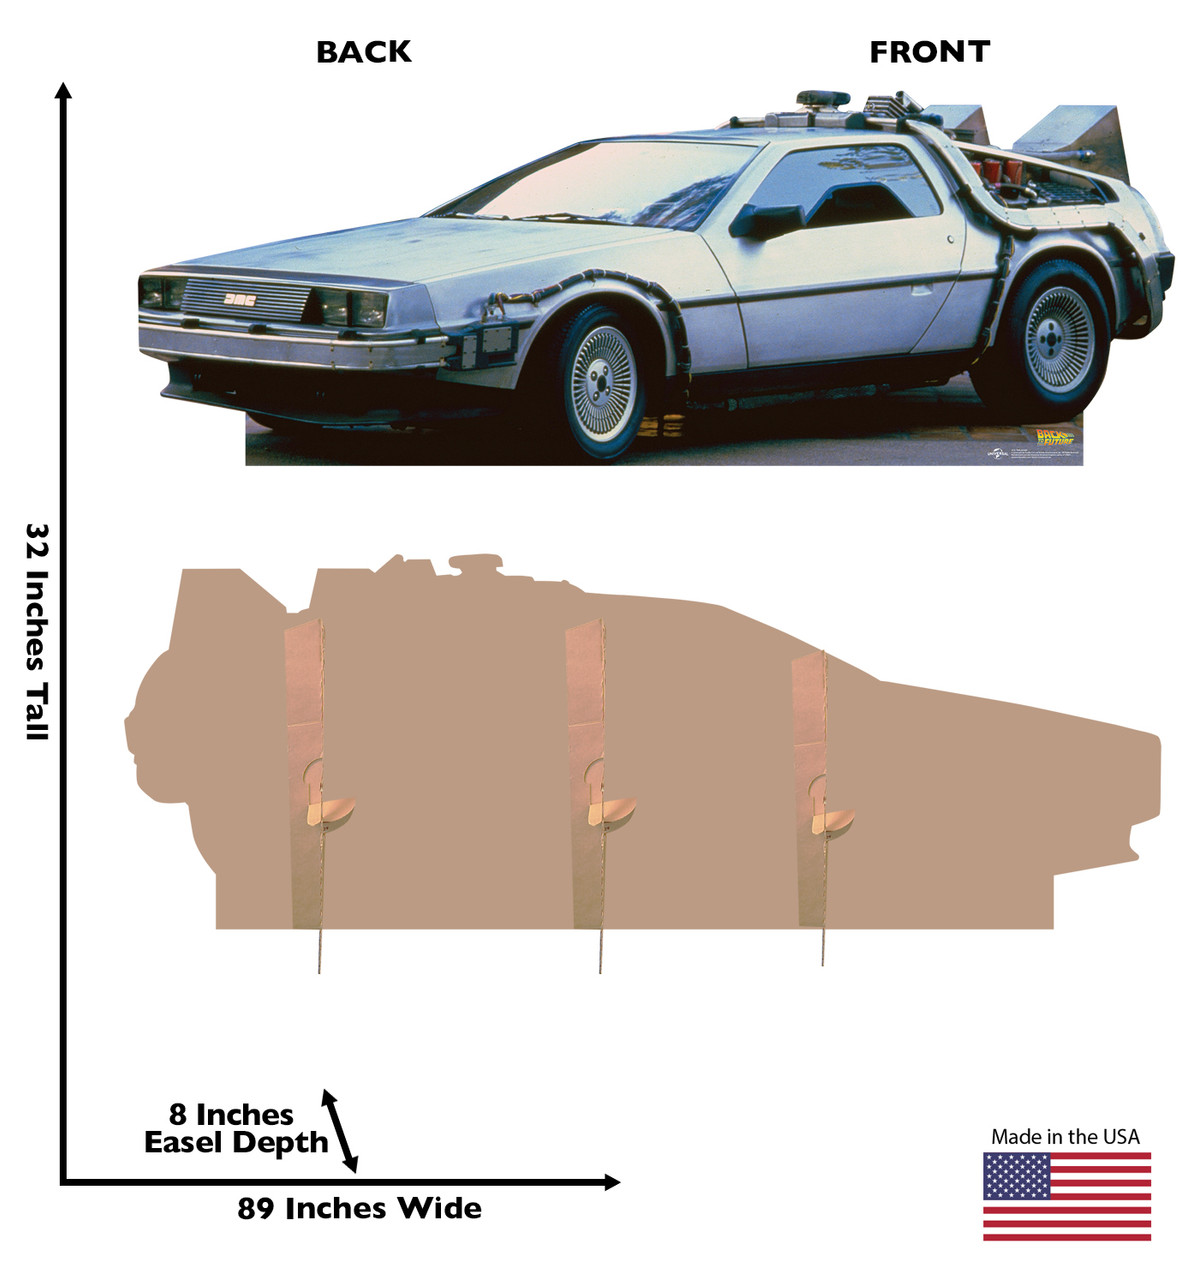 Life-size cardboard  standee of the DeLorean from Back to the Future movie with front and back dimensions.